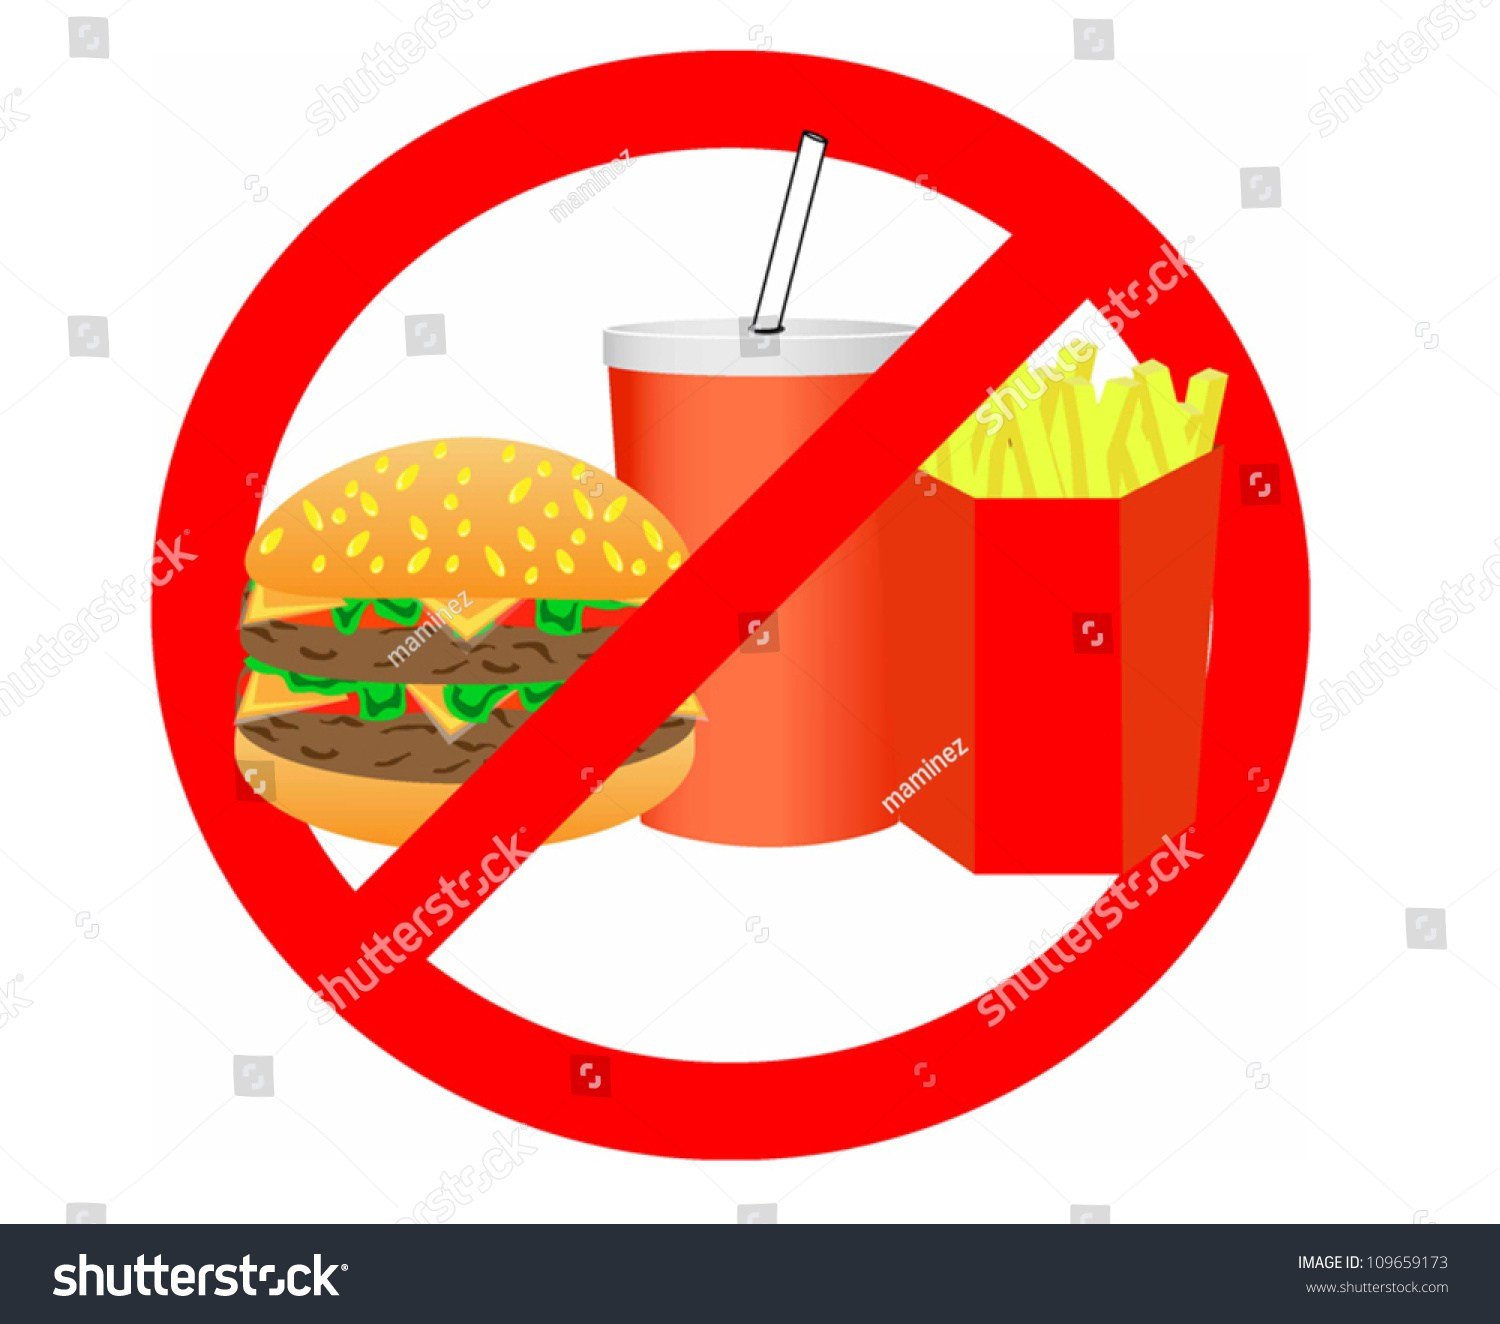 No unhealthy food clipart 4 » Clipart Portal.